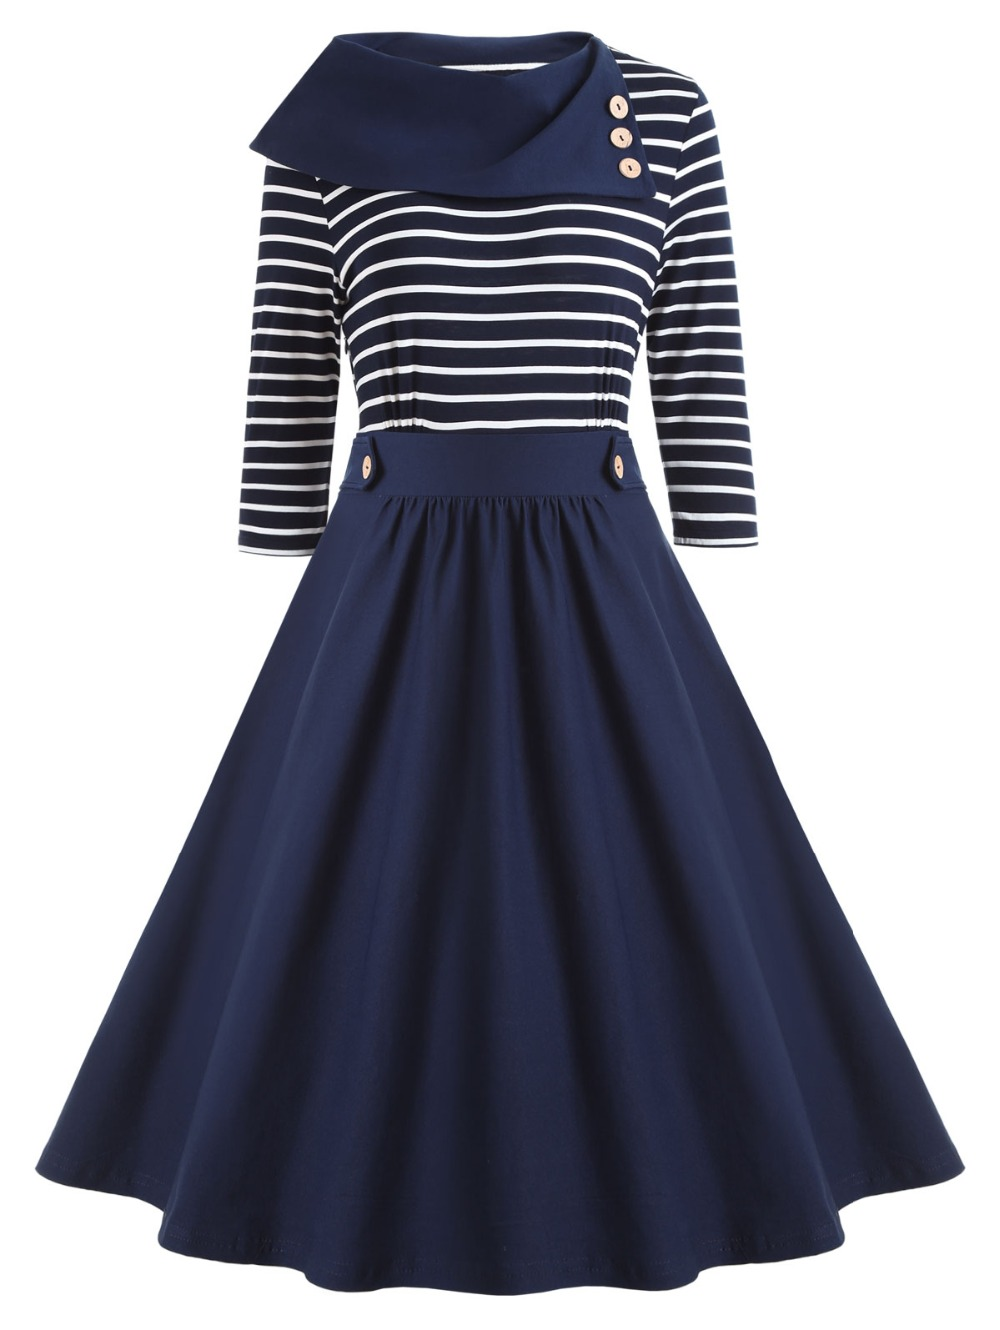 Chic Woman New Fashion Vintage Striped Patchwork Long Sleeve Shawl Collar A Line OL Midi Dress in Dresses from Women 39 s Clothing